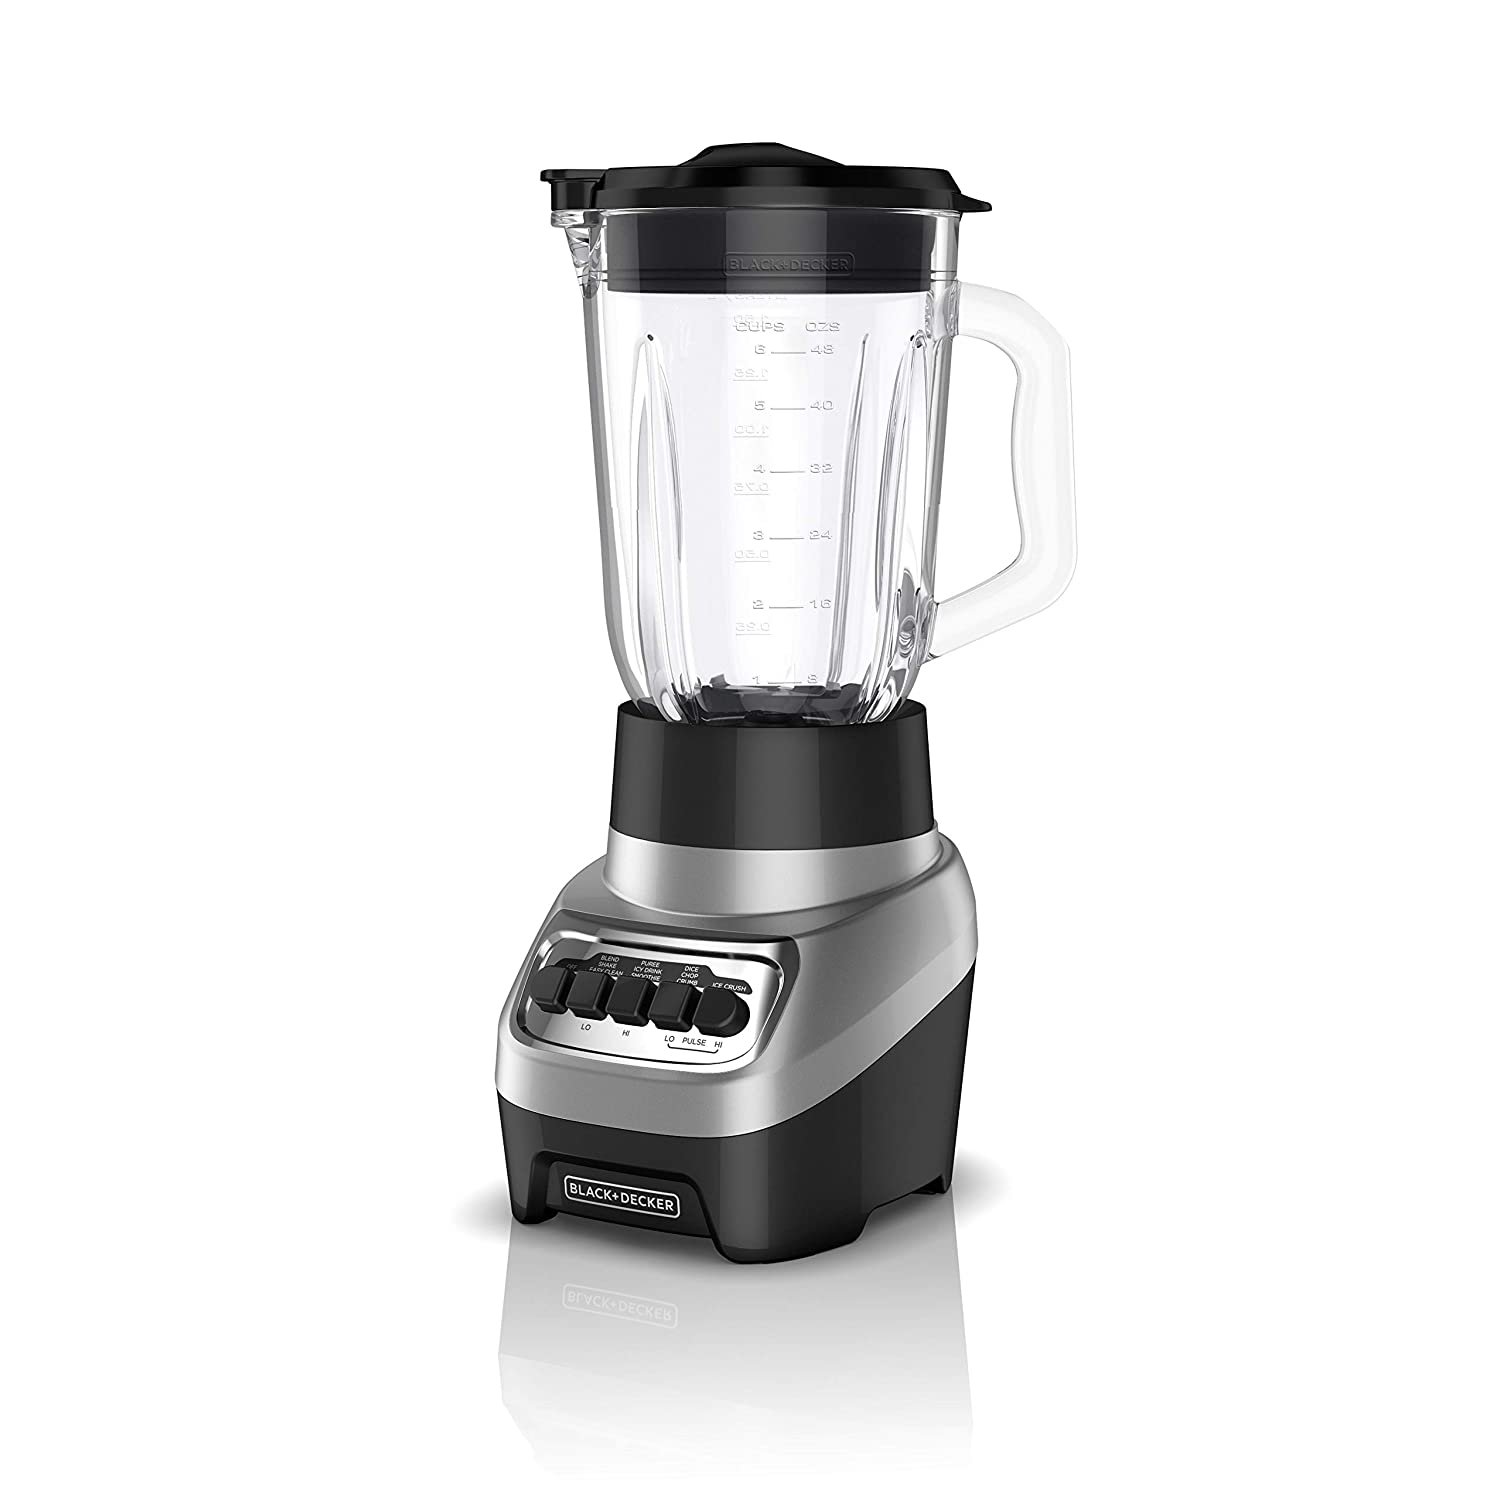 BLACK+DECKER BL1230SG PowerCrush Multi-Function Blender with 6-Cup Glass Jar, 4 Speed Settings, Silver